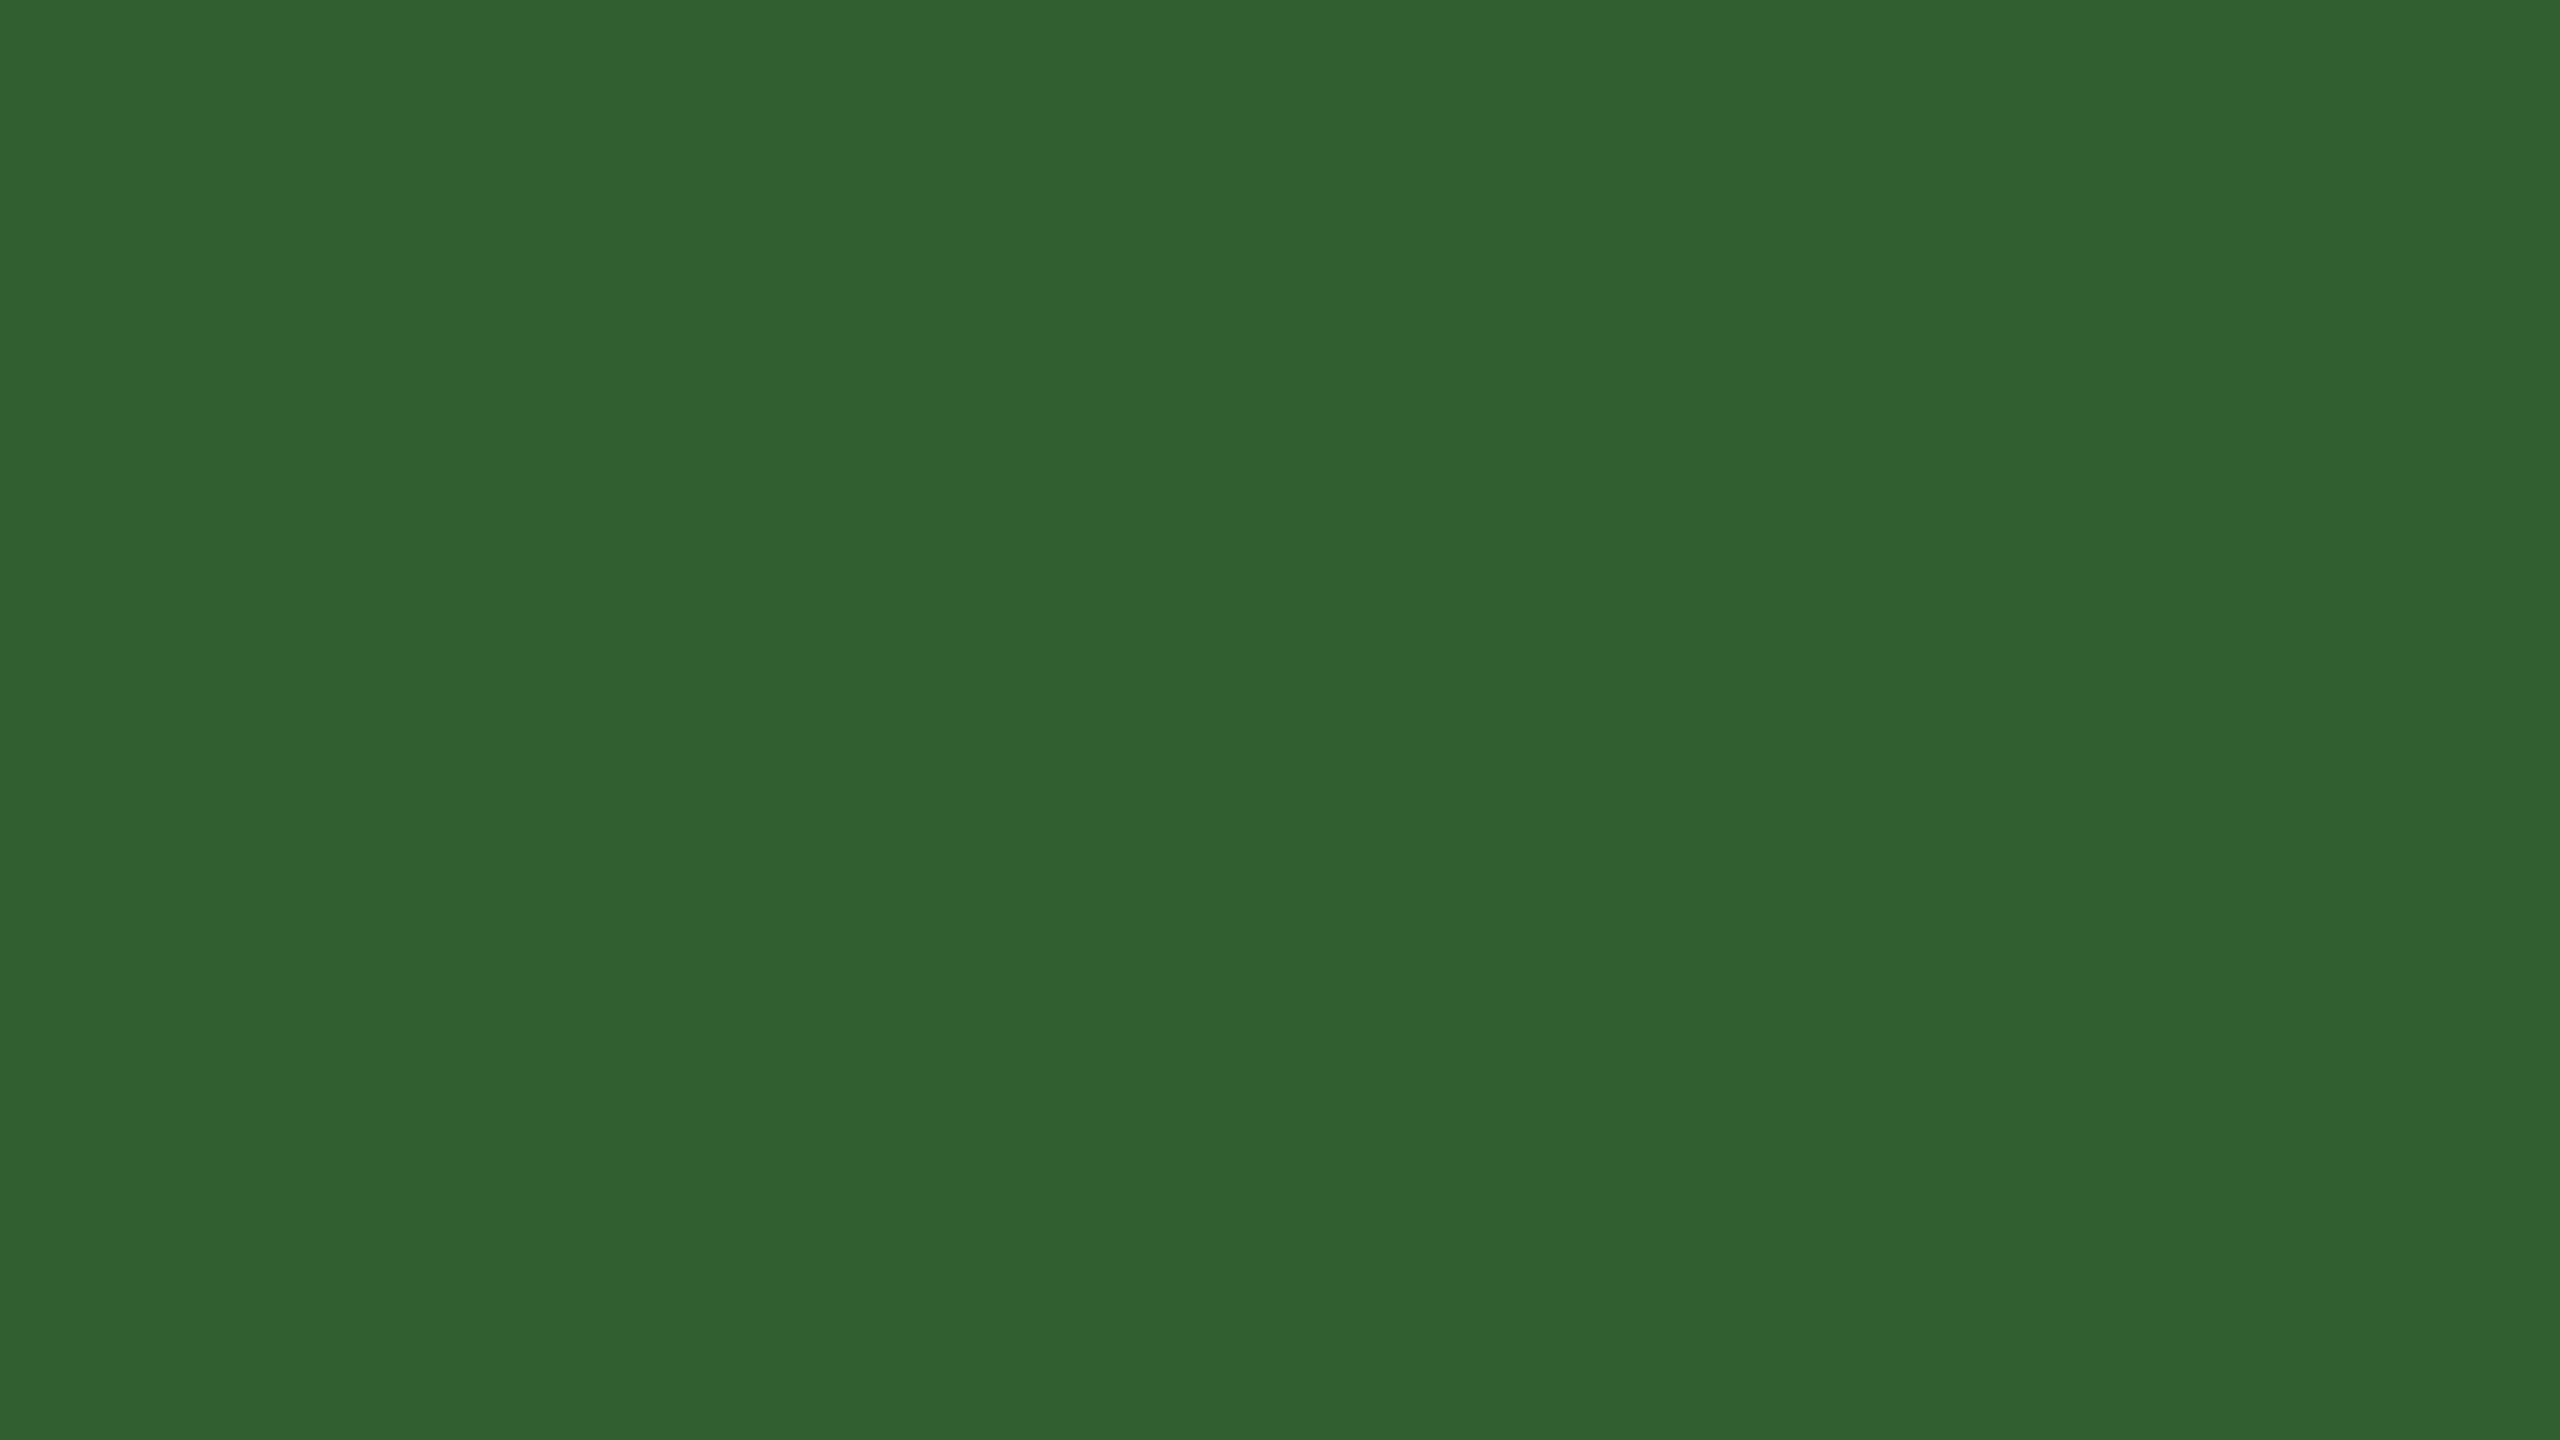 2560x1440 Mughal Green Solid Color Background